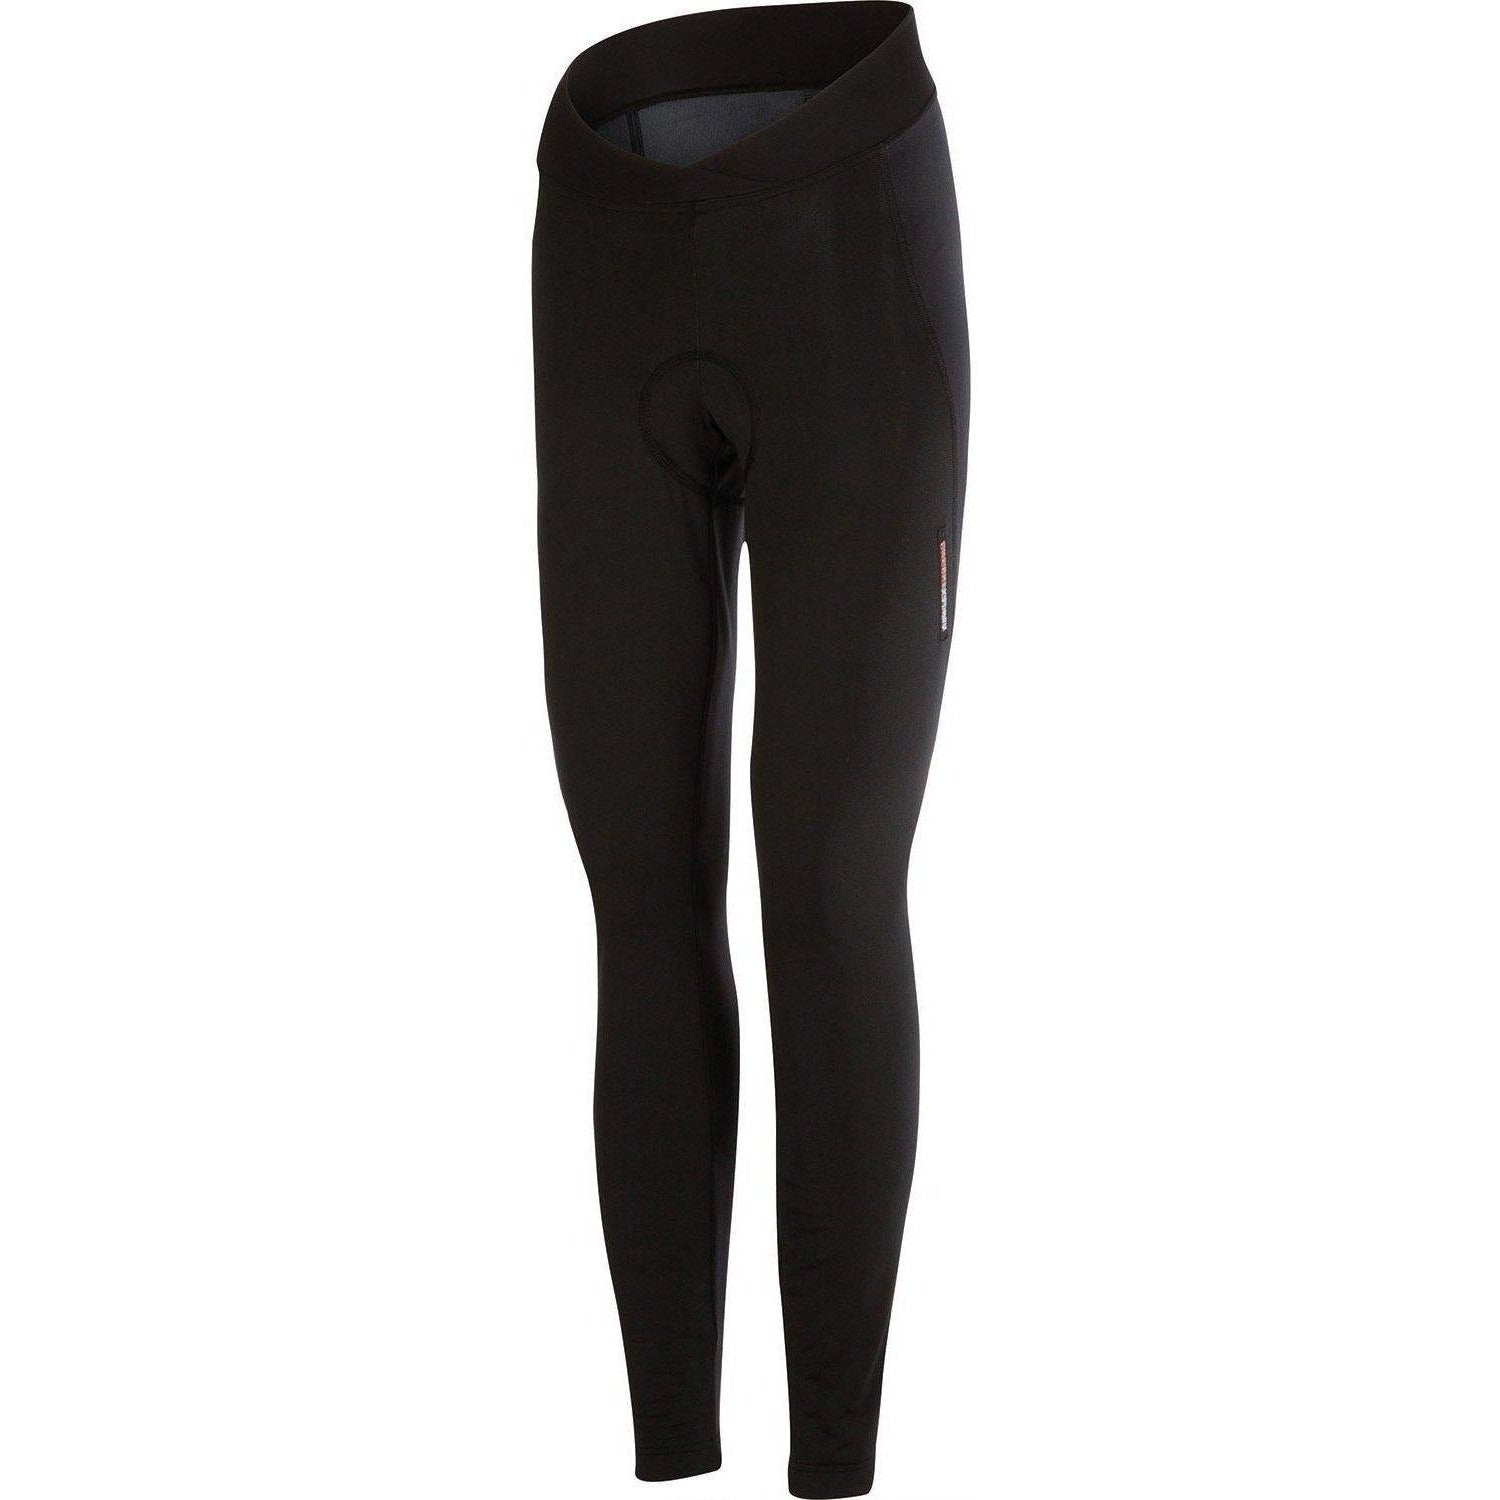 Tights - Castelli Meno Wind Women's Cycling Tight